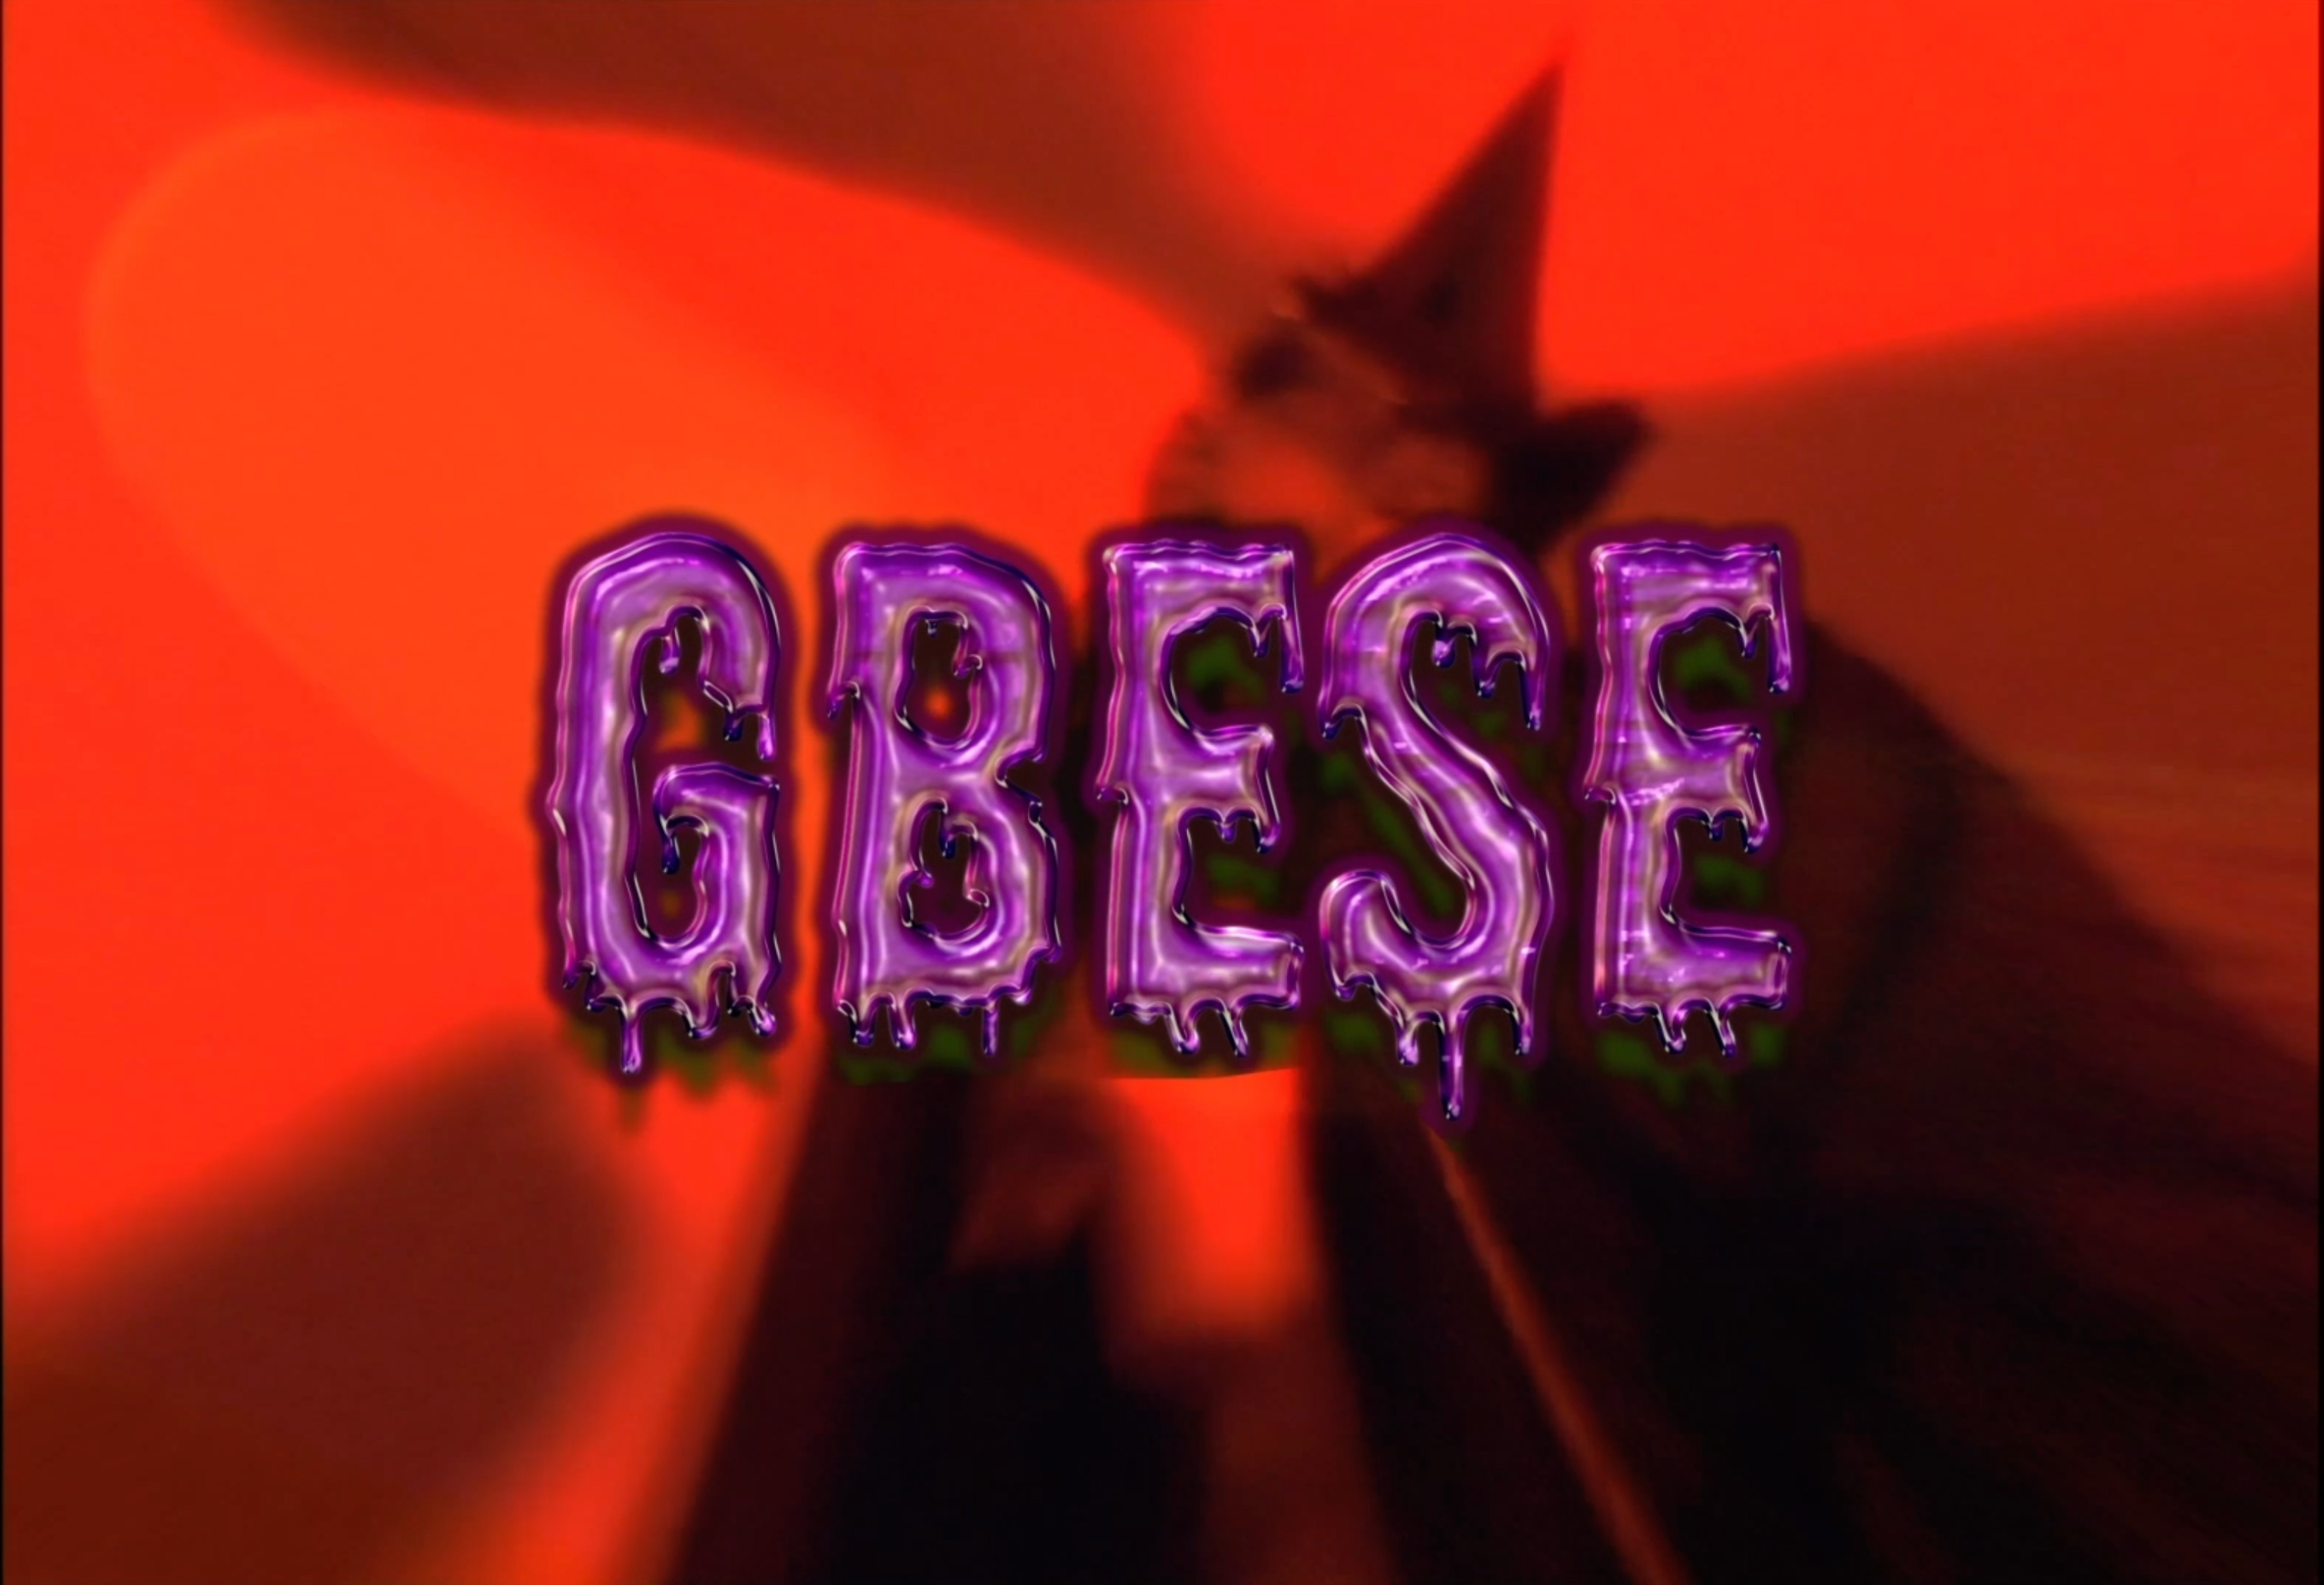 fuji Wants To Soundtrack Fun Times With Friends On 'Gbese!'